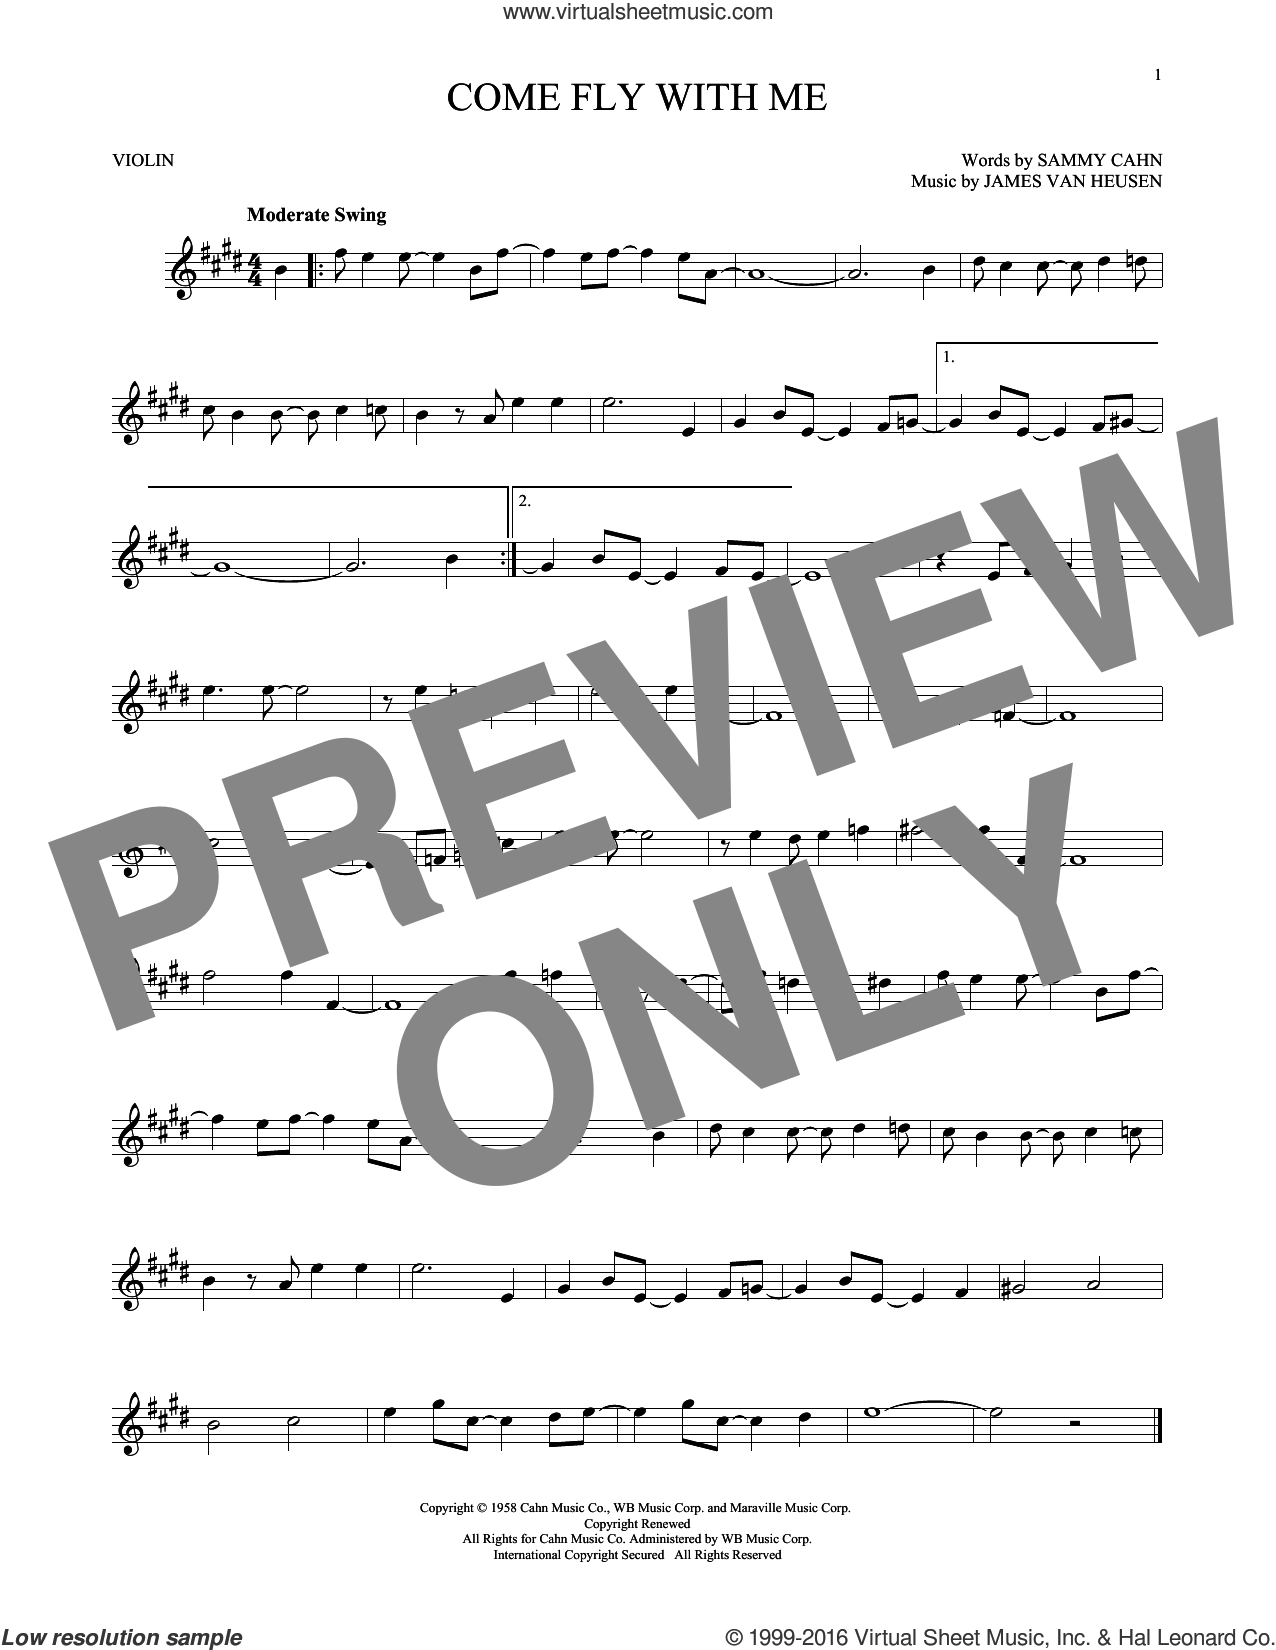 Come Fly With Me sheet music for violin solo by Sammy Cahn and Jimmy van Heusen. Score Image Preview.